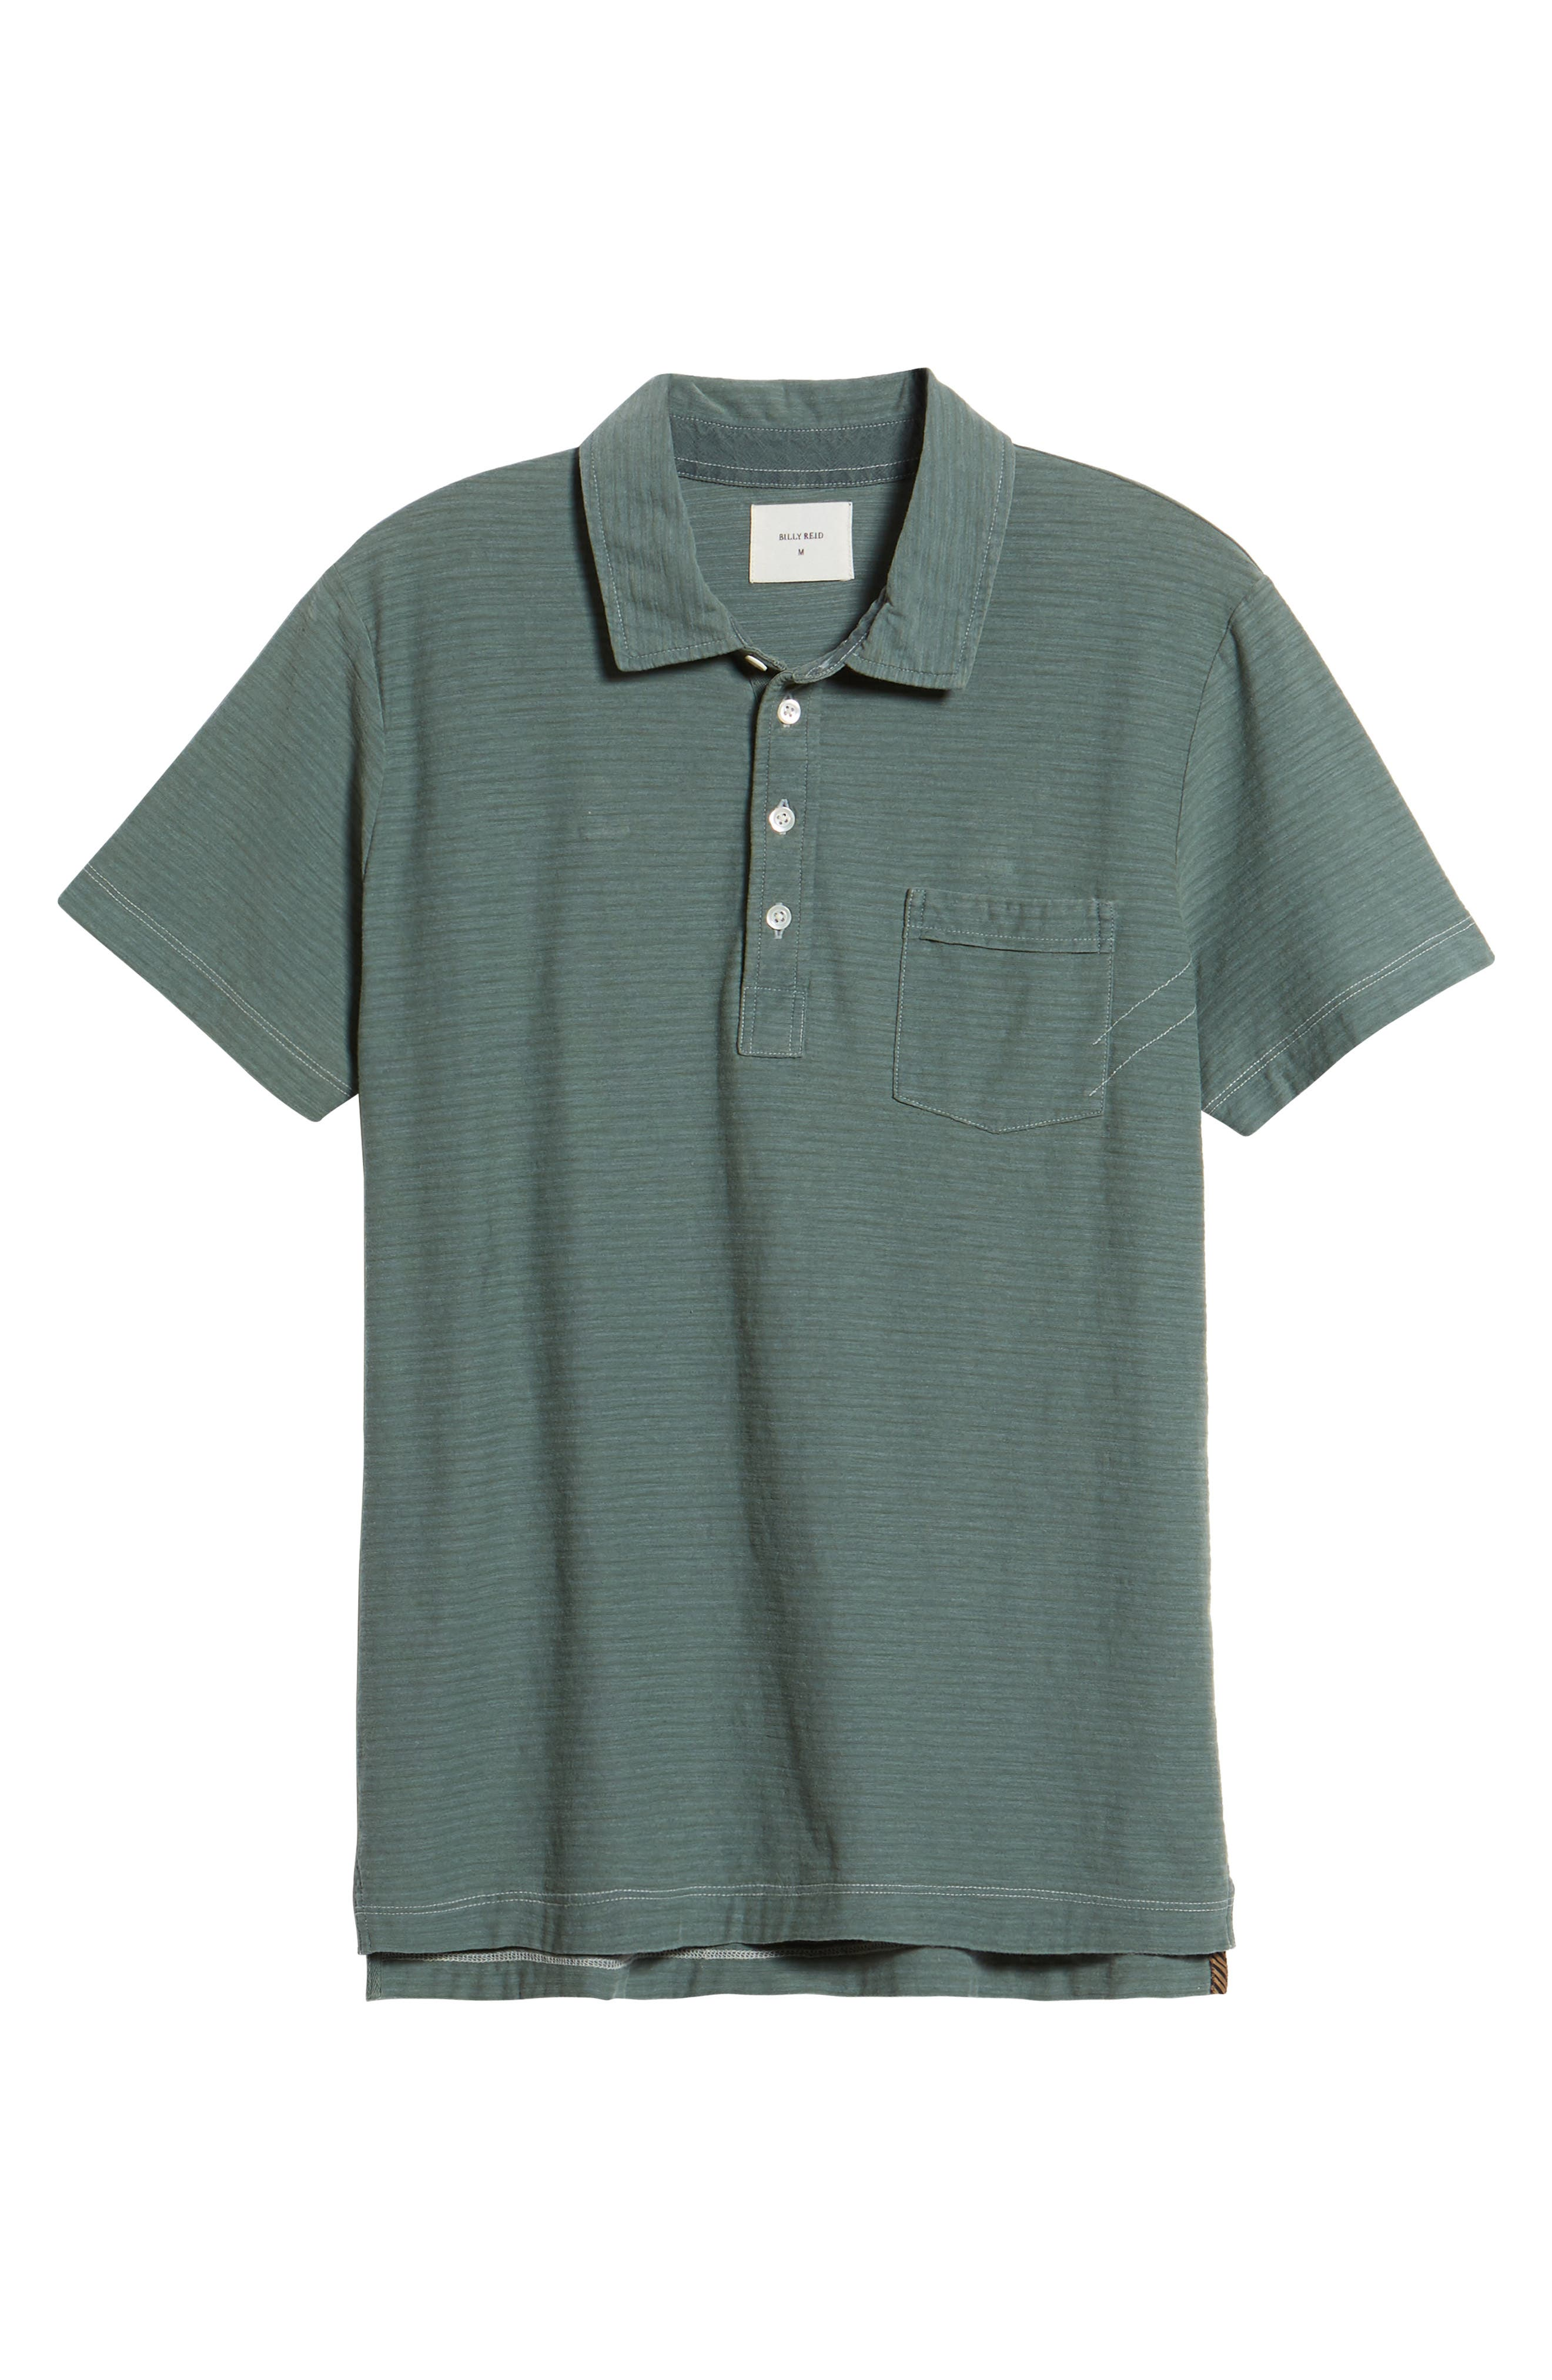 Pensacola Cotton Blend Polo Shirt,                             Alternate thumbnail 6, color,                             Sage